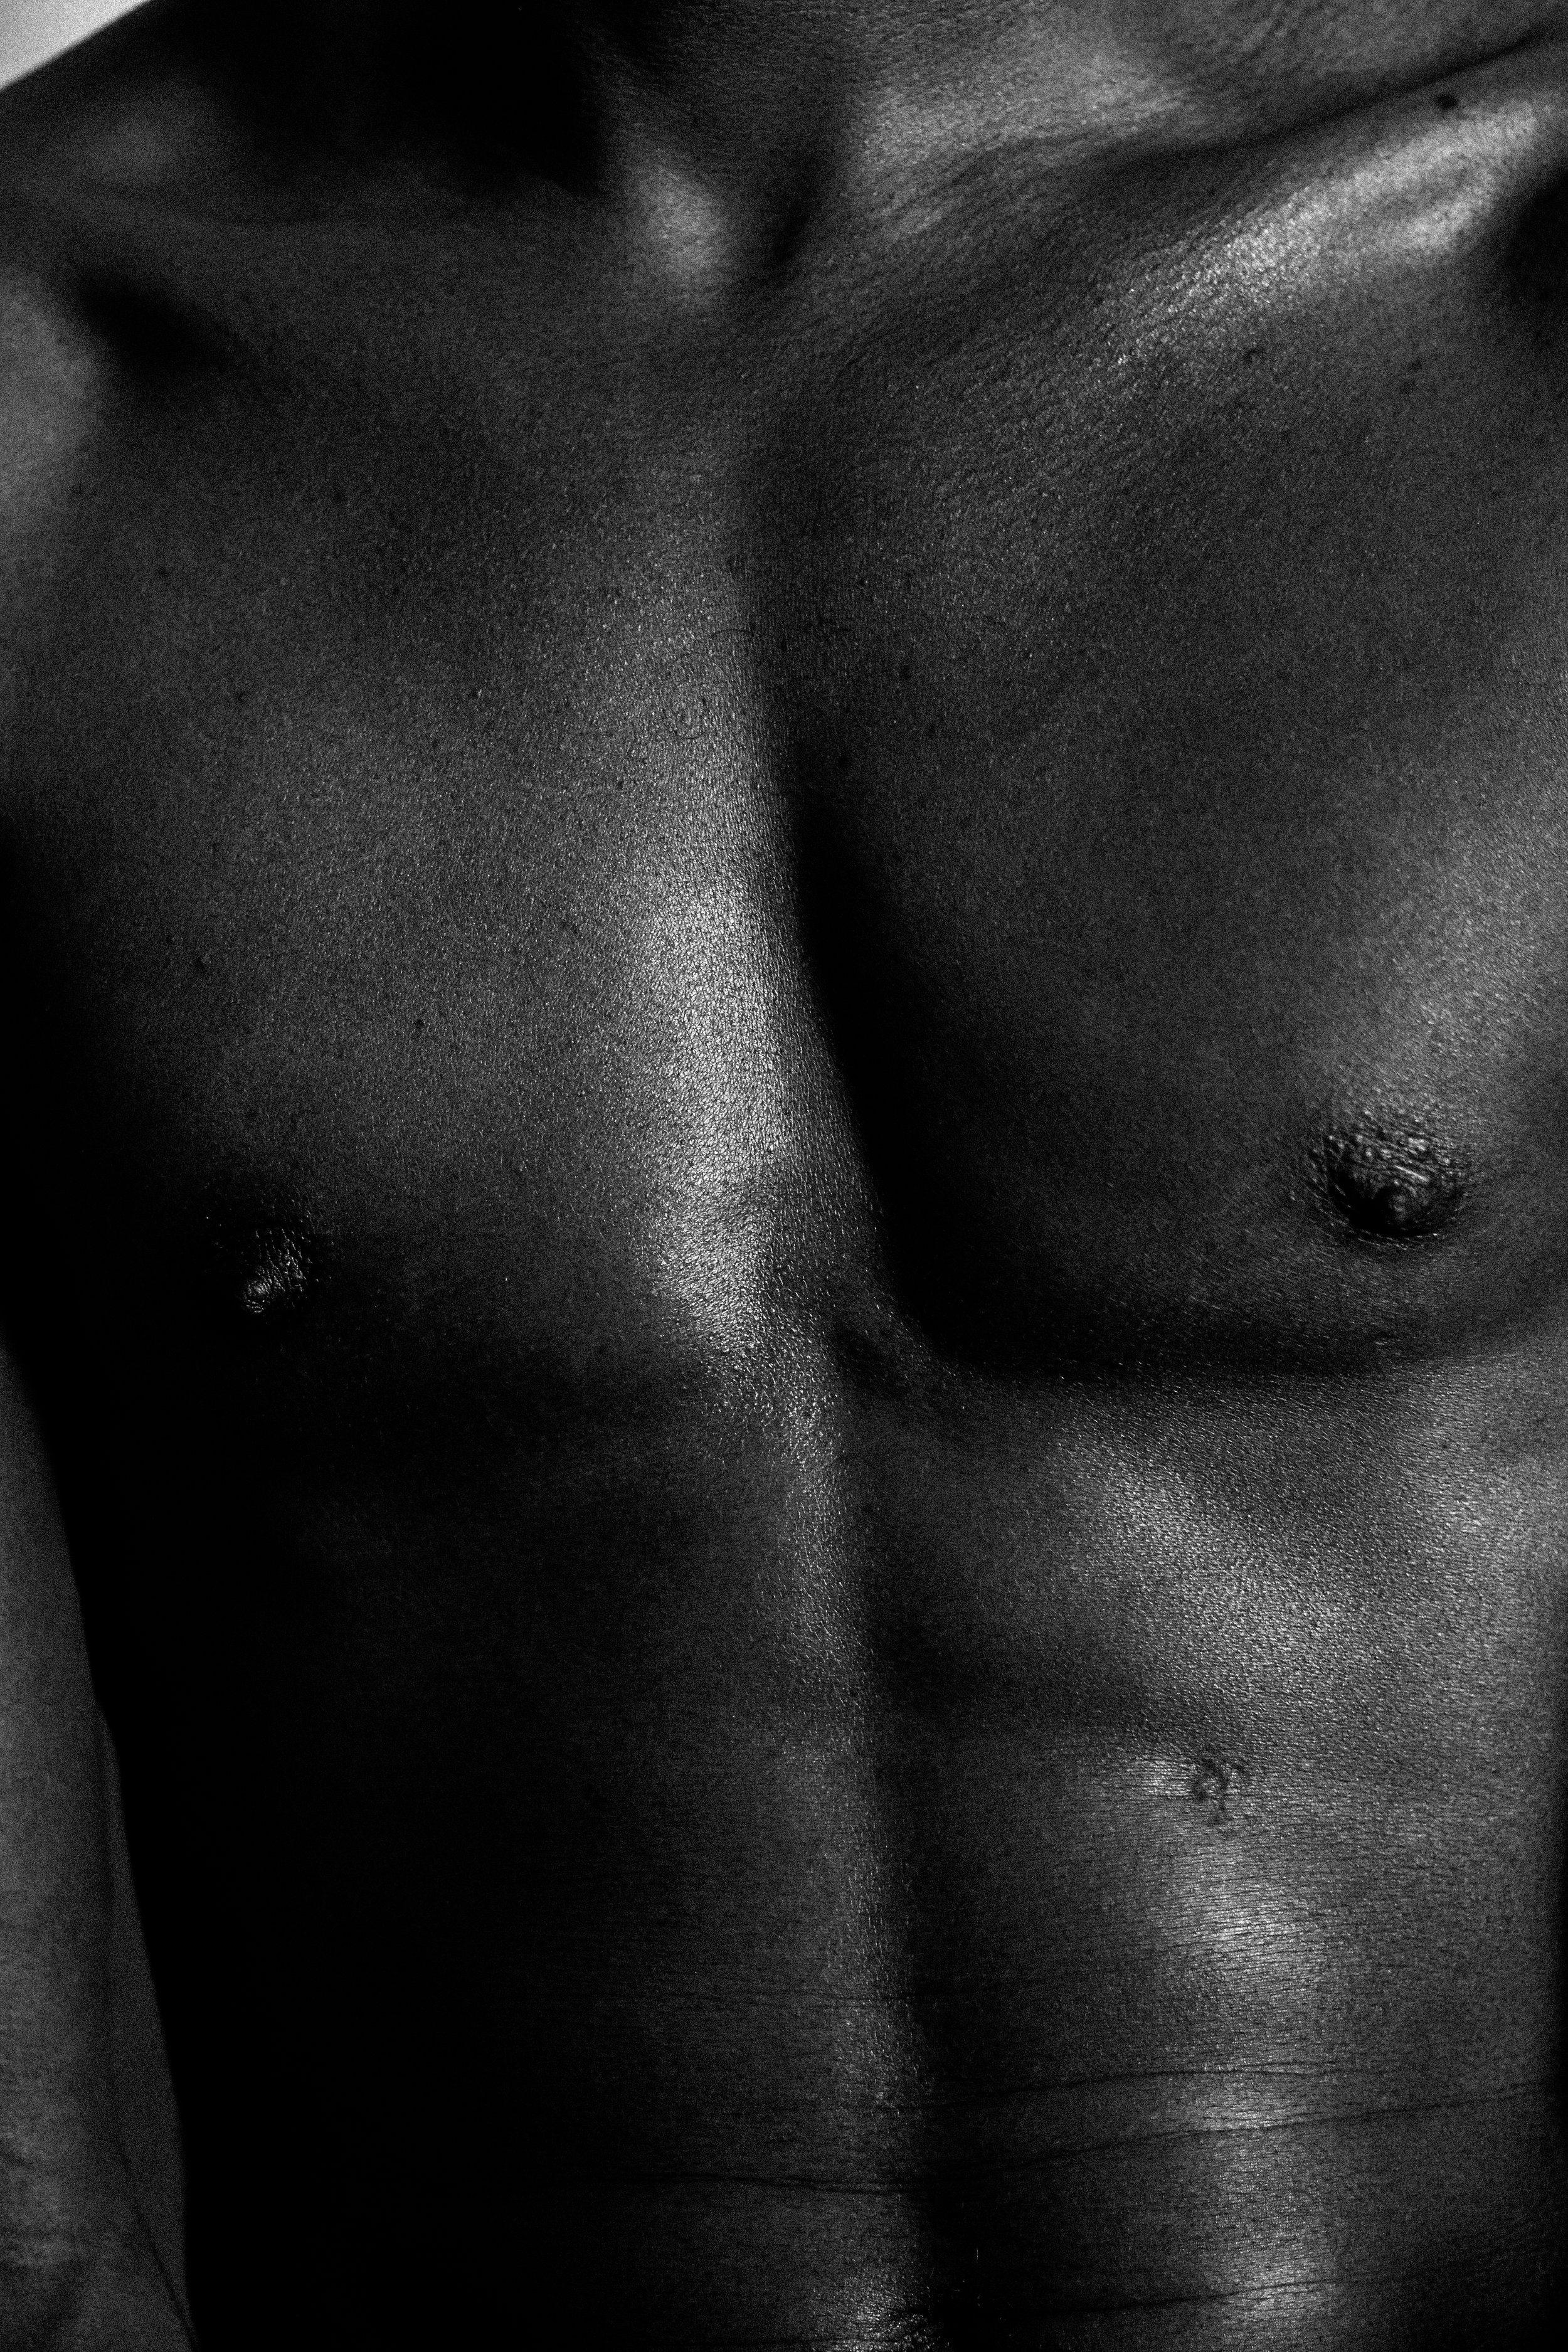 [Image Description: A black and white close up of a black man's chest deep in shadow, a scar is partway down his left abdomen]